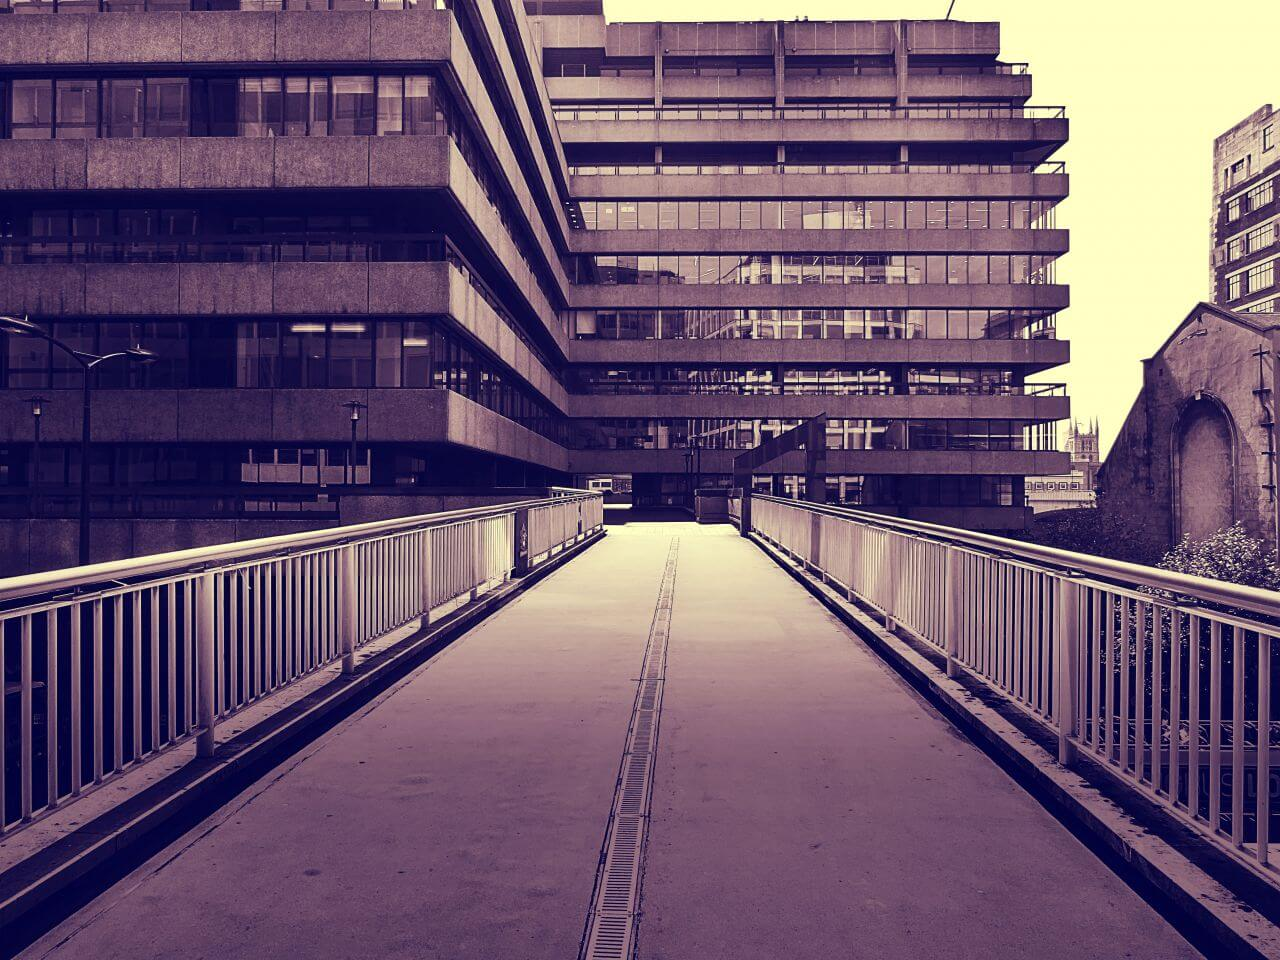 """Free photo """"Architectural design"""" by  Juhasz Imre"""